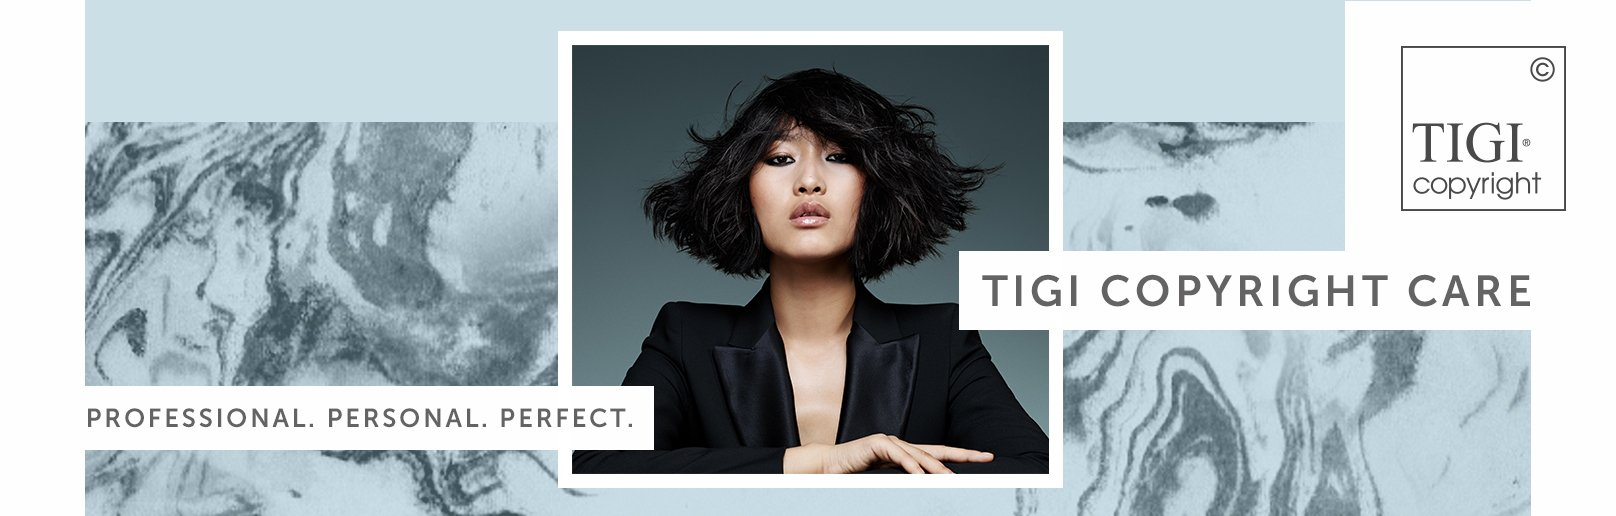 TIGI Copyright Care at Forresters Hair Salons - Eny